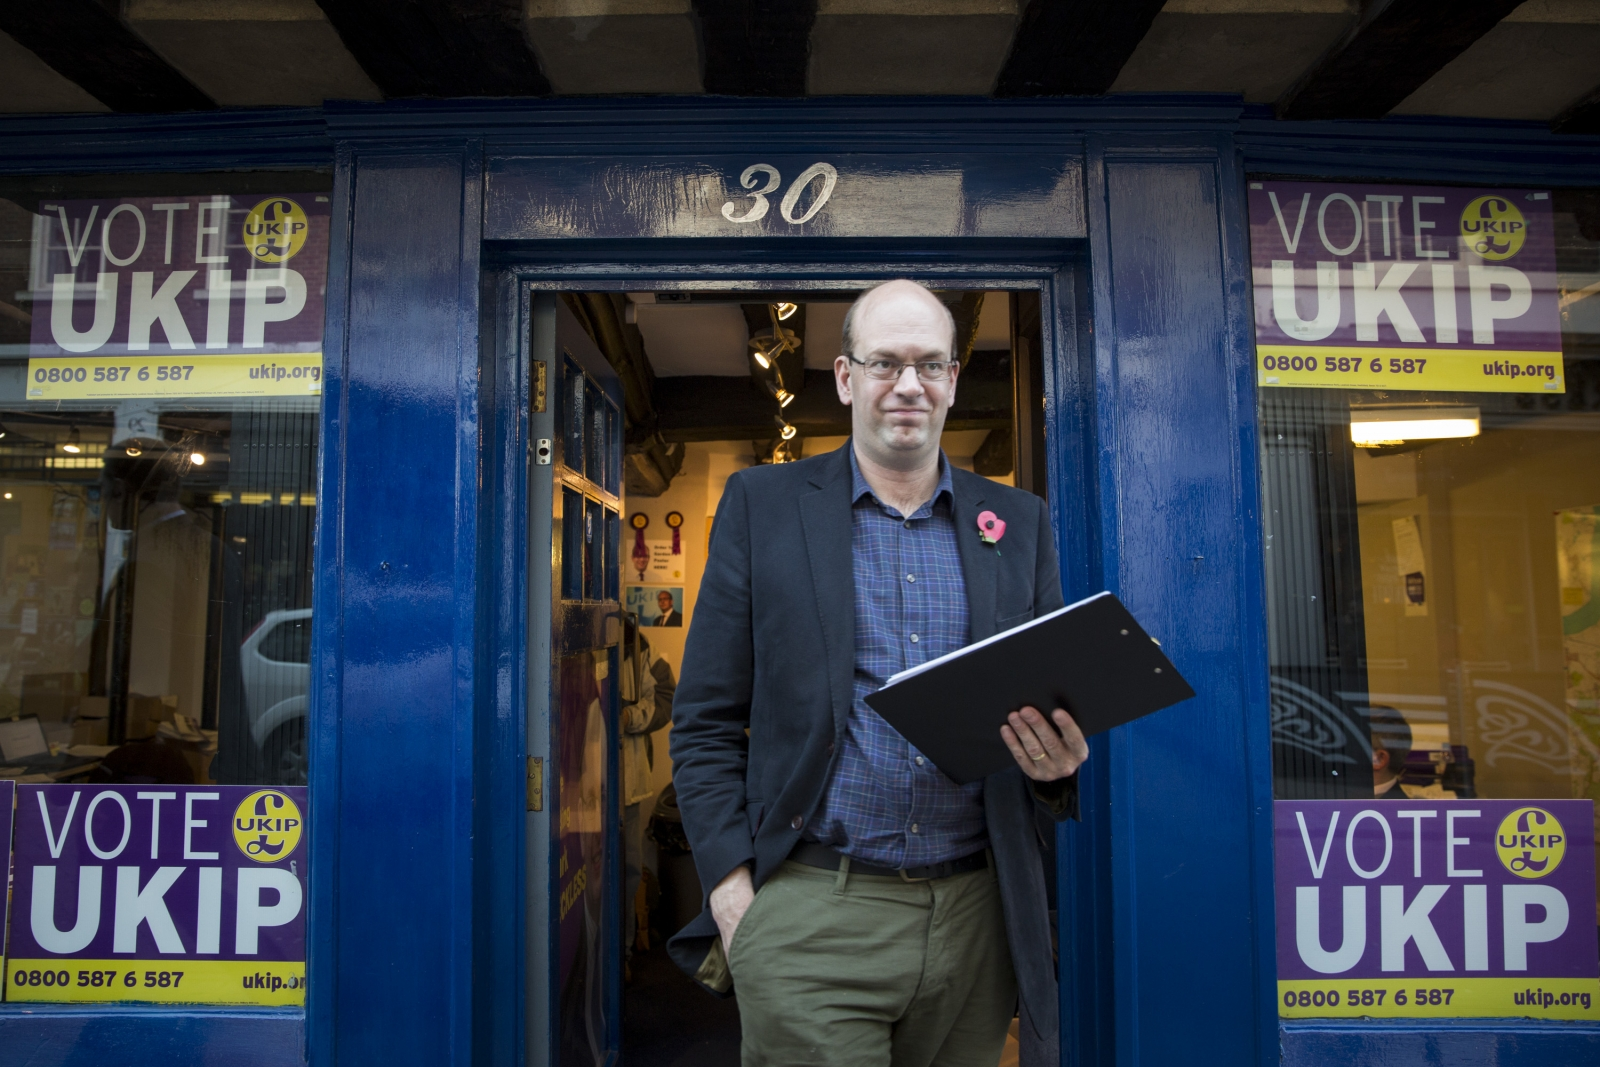 Mark Reckless reckons Colonel Gaddafi helped keep uk immigration numbers down